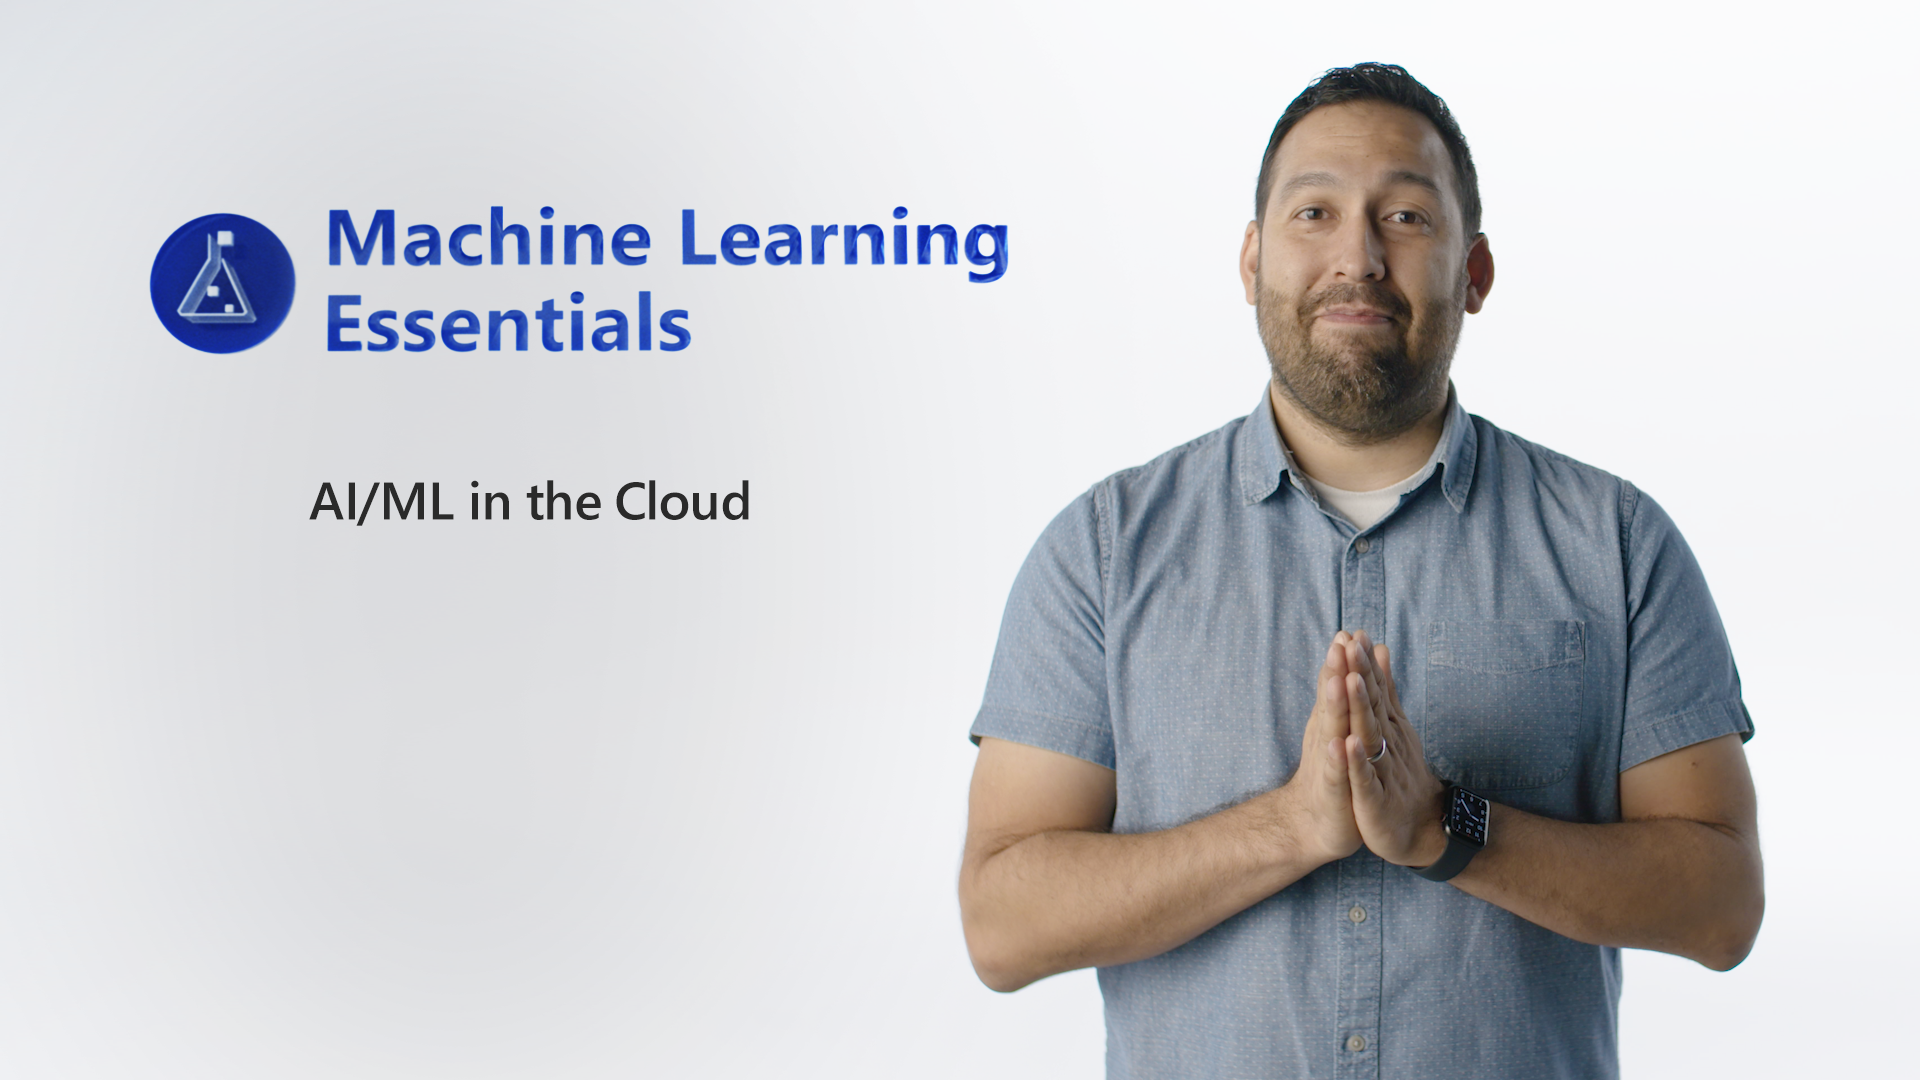 Fundamentals of machine learning in the cloud